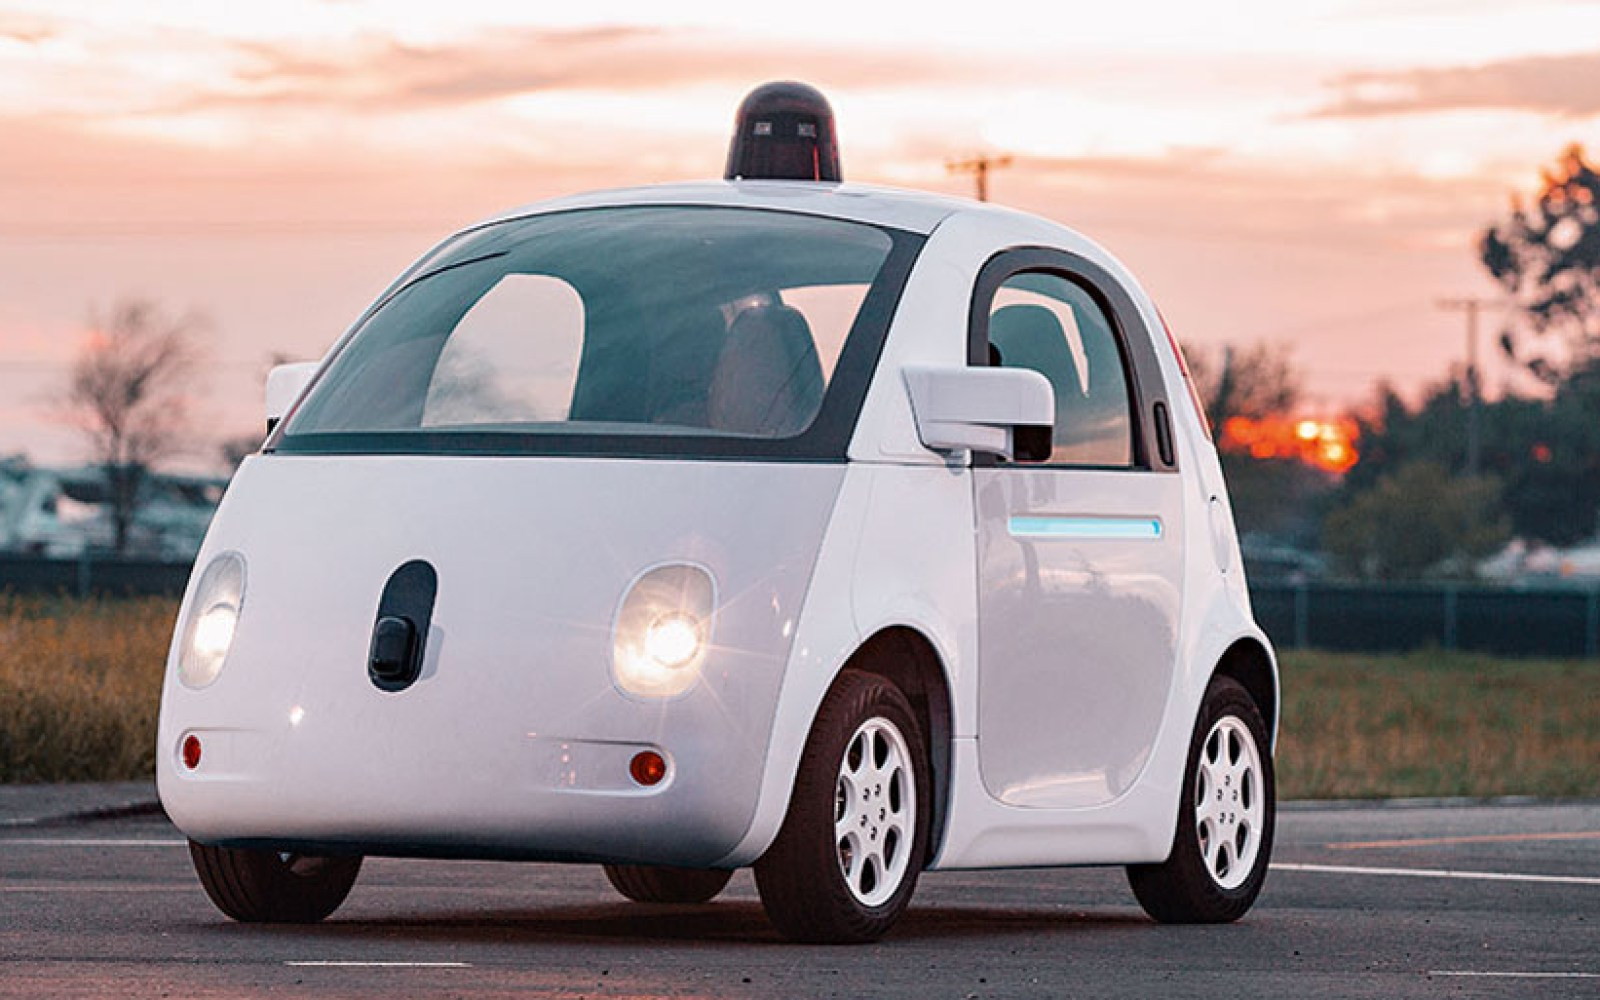 California DMV wants to ban Google's proposal for self-driving cars without manual driving controls